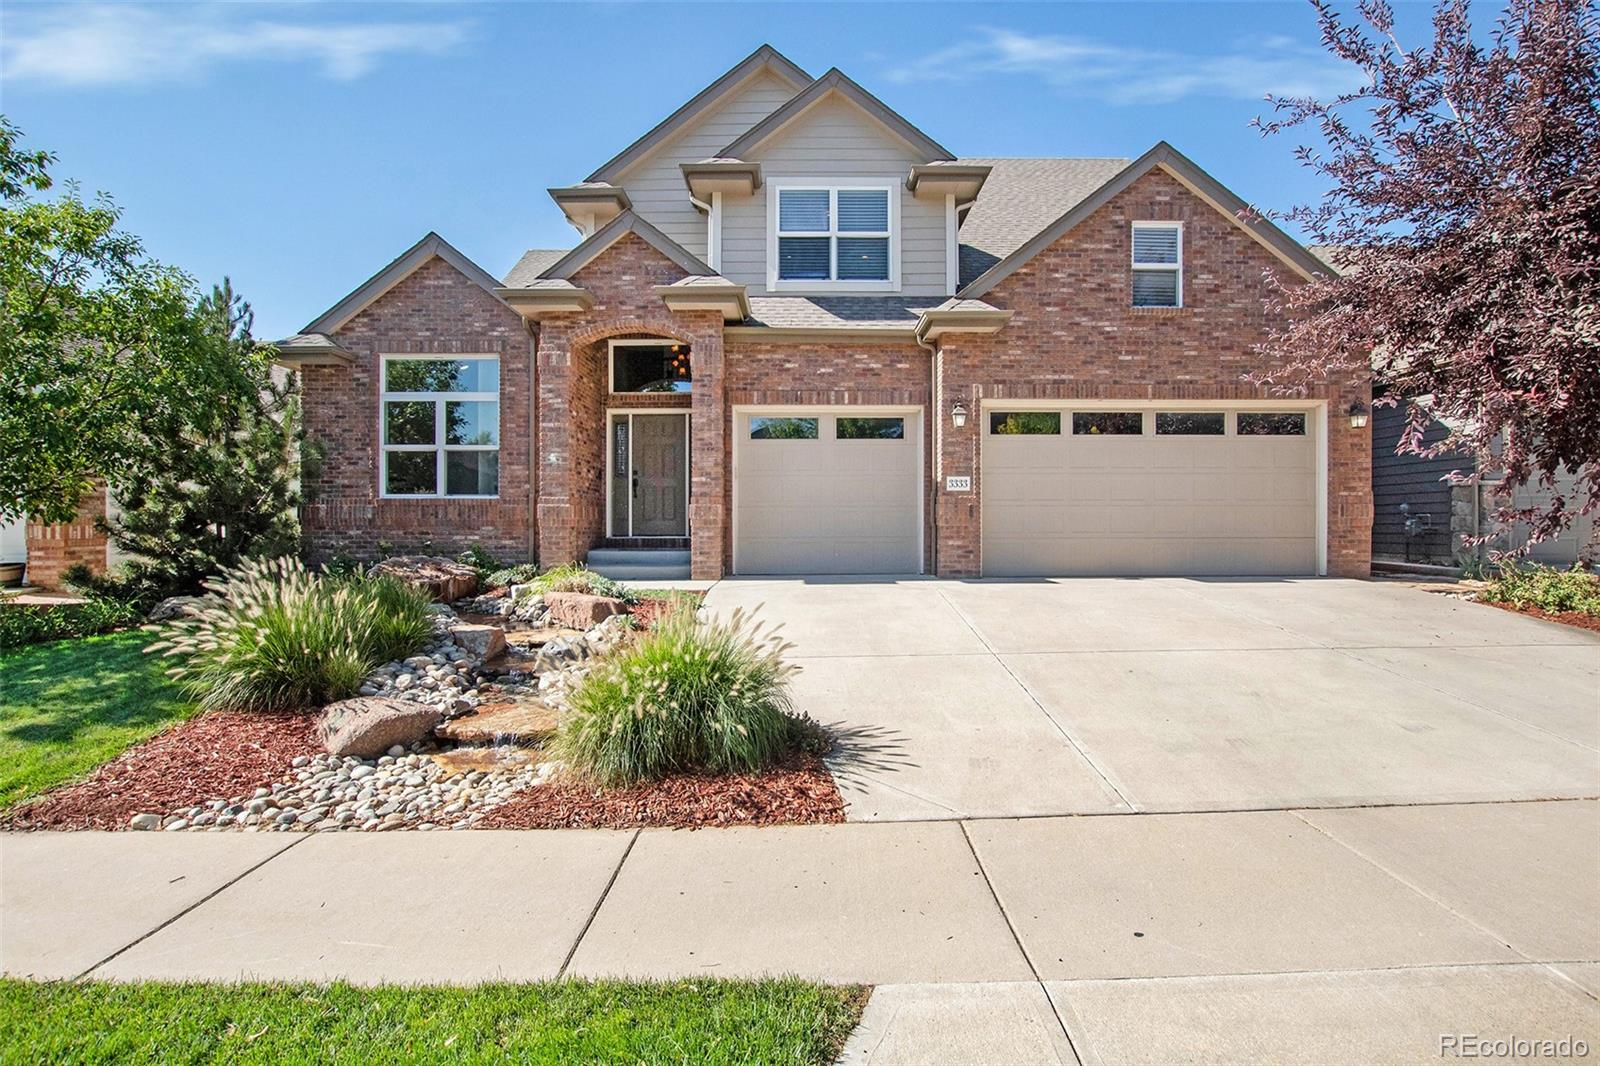 3333 Wild View Drive, Fort Collins, CO 80528 - Fort Collins, CO real estate listing